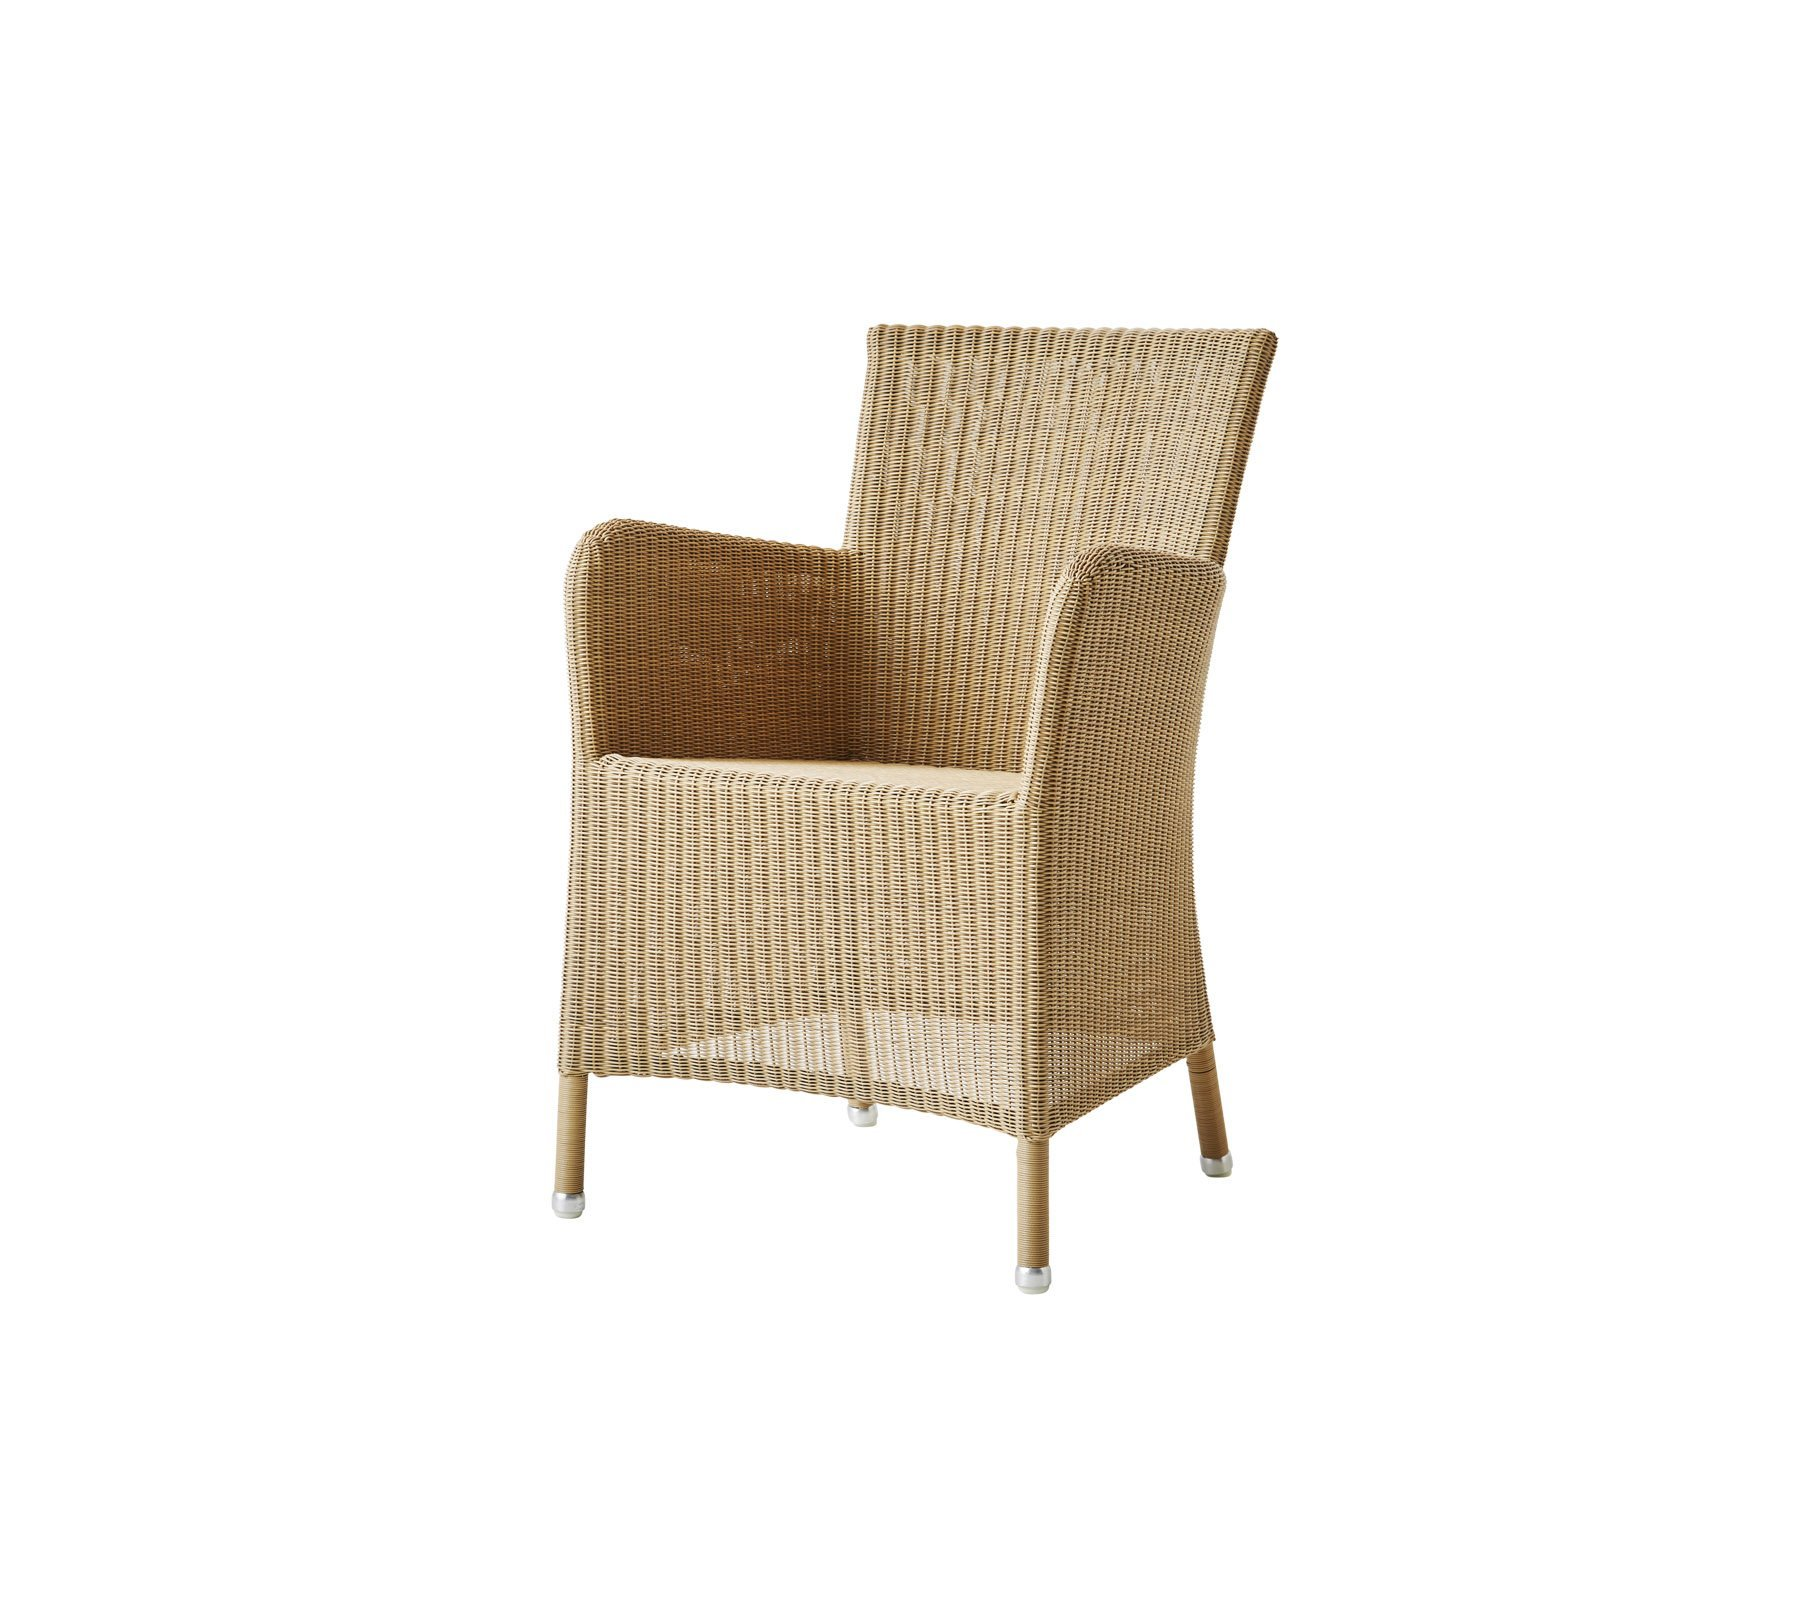 Hampsted Chair from Cane-line, designed by Cane-line Design Team